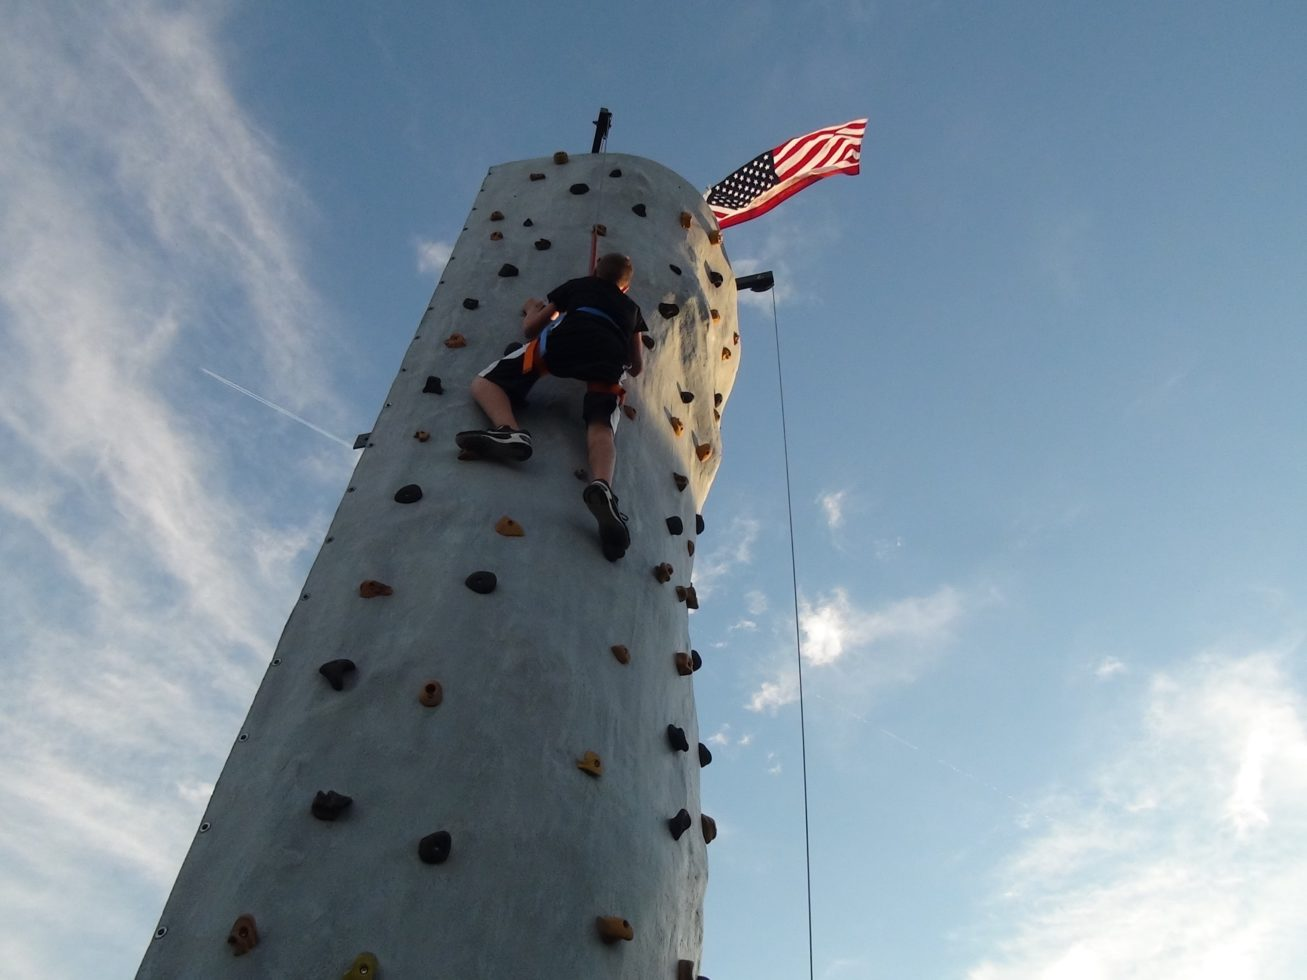 Kid Climbing rock wall